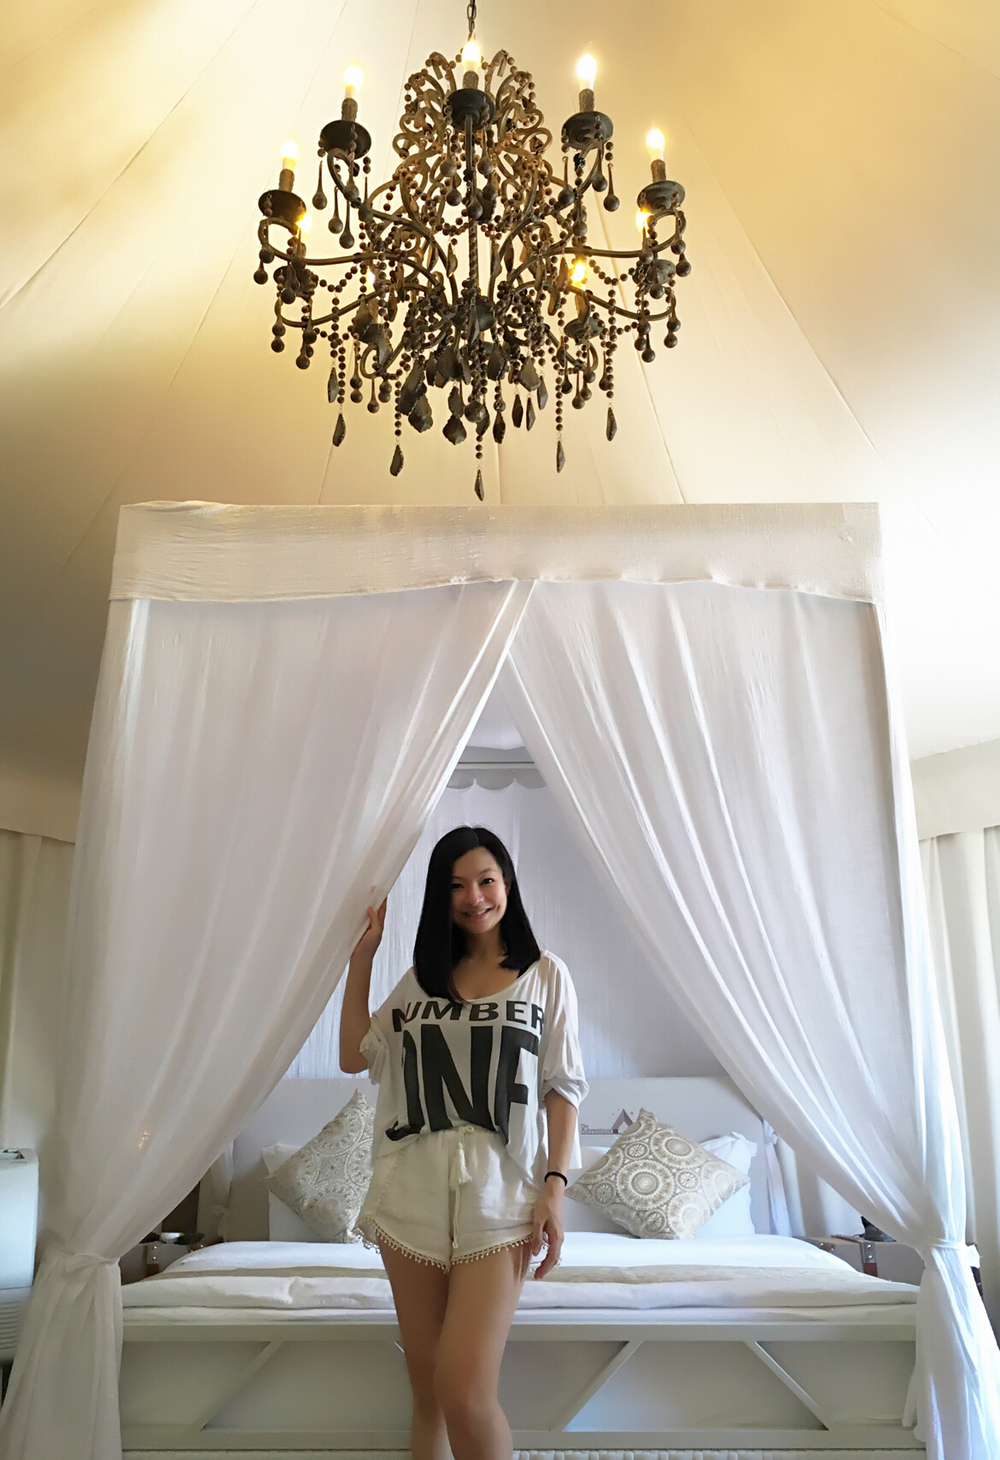 My fave piece of furniture was the gorgeous chandelier...